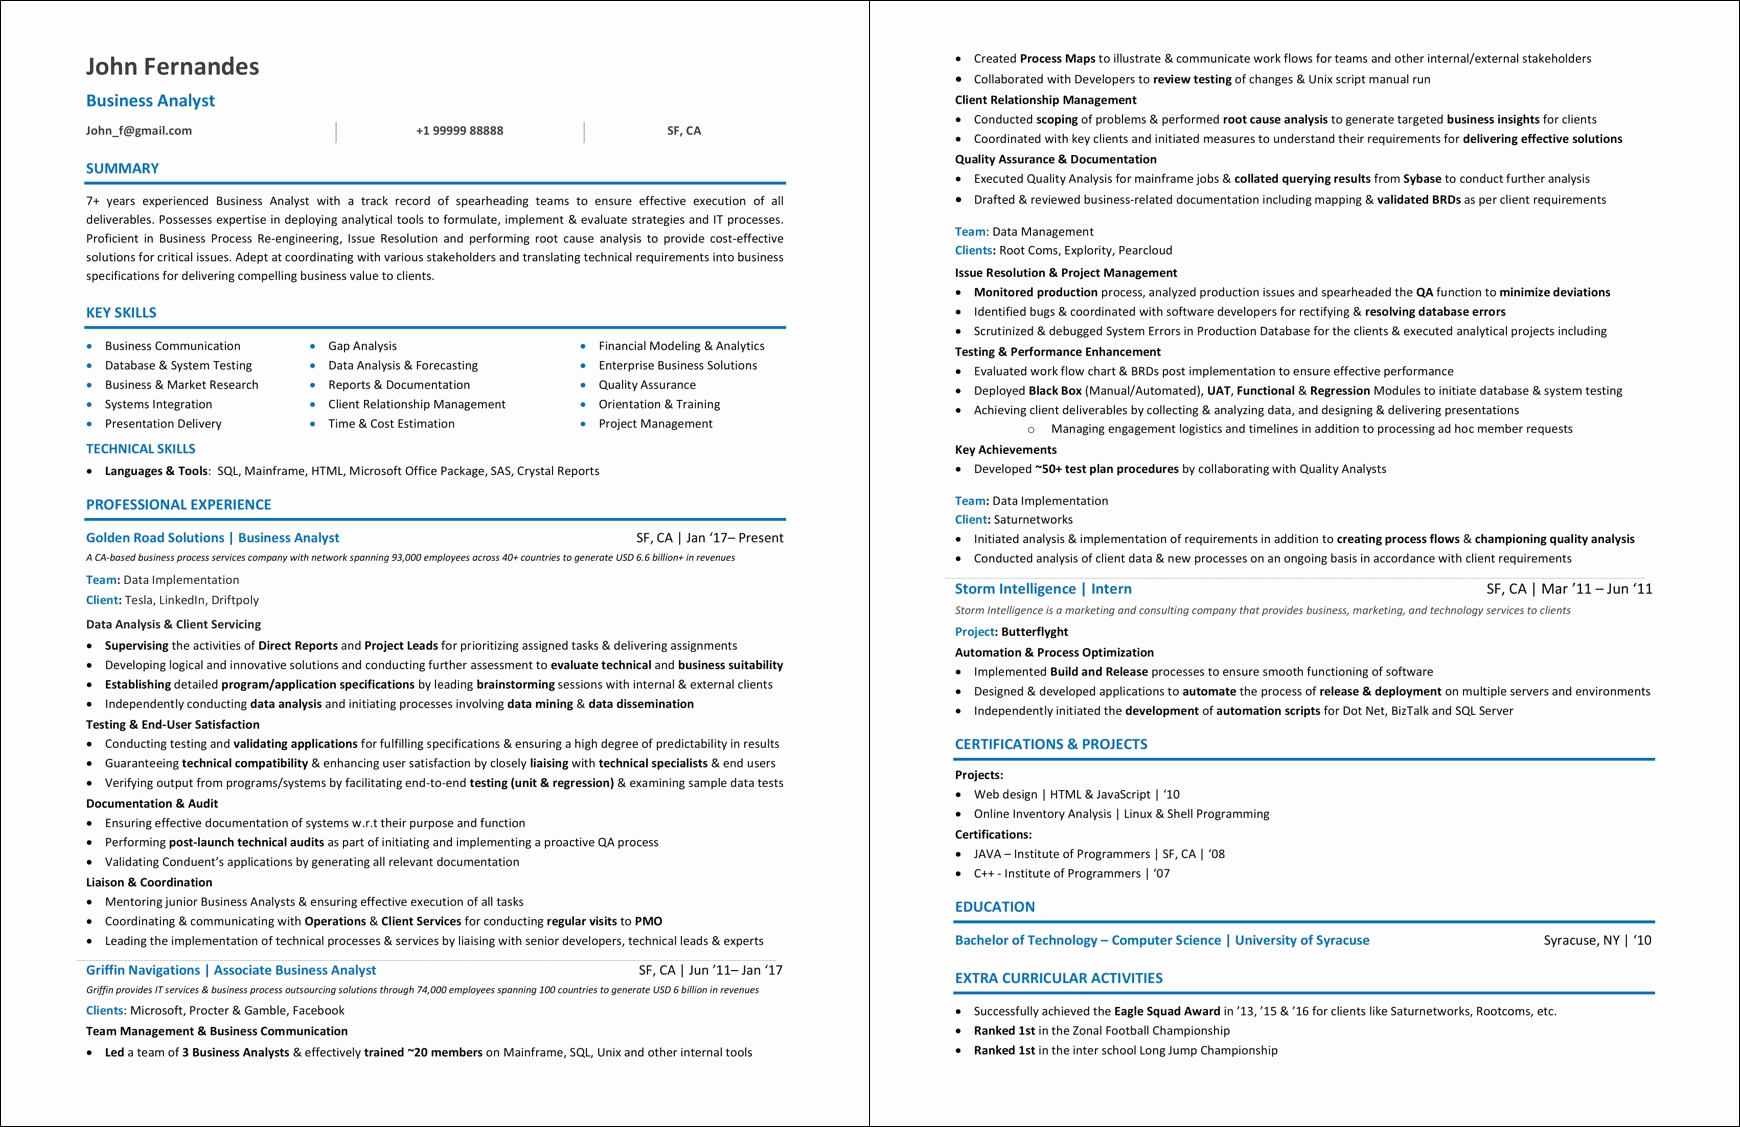 Sample Business Analyst Resume New Business Analyst Resume Examples & 2019 Guide [ Best